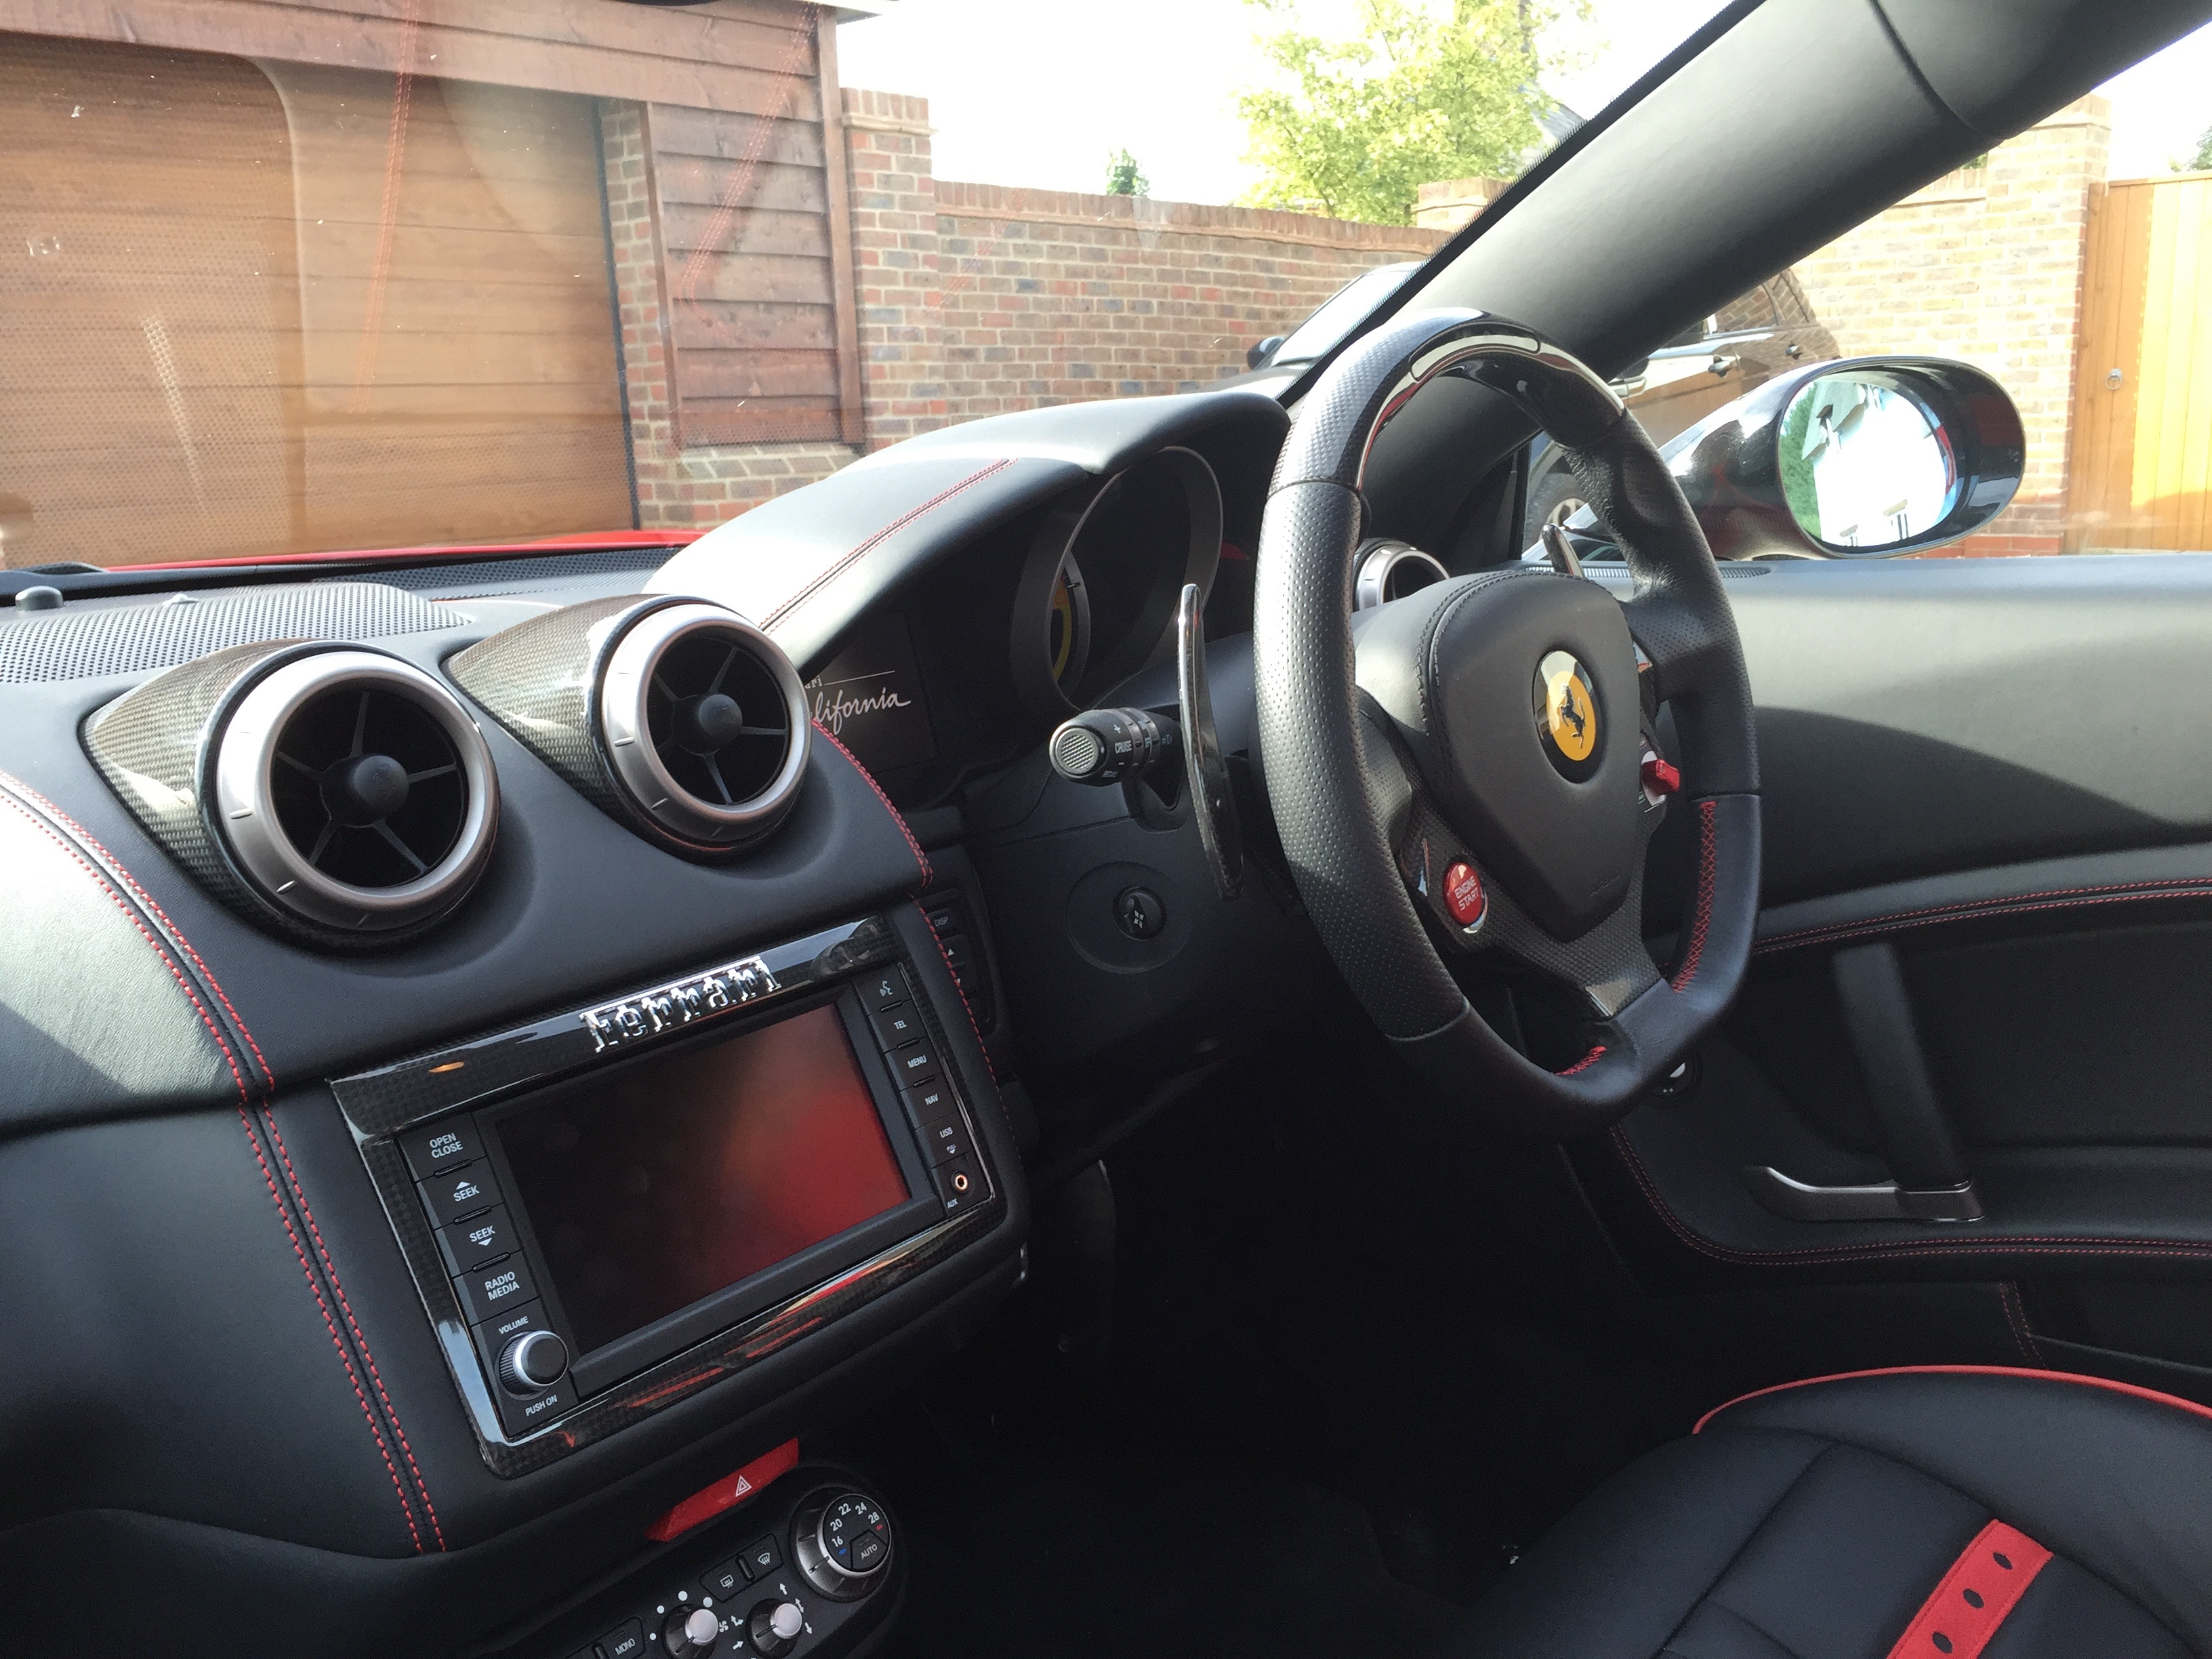 The Interior Of My Ferrari California Black Interior In My Eyes Is Always A Winner Whats You Interior Preference